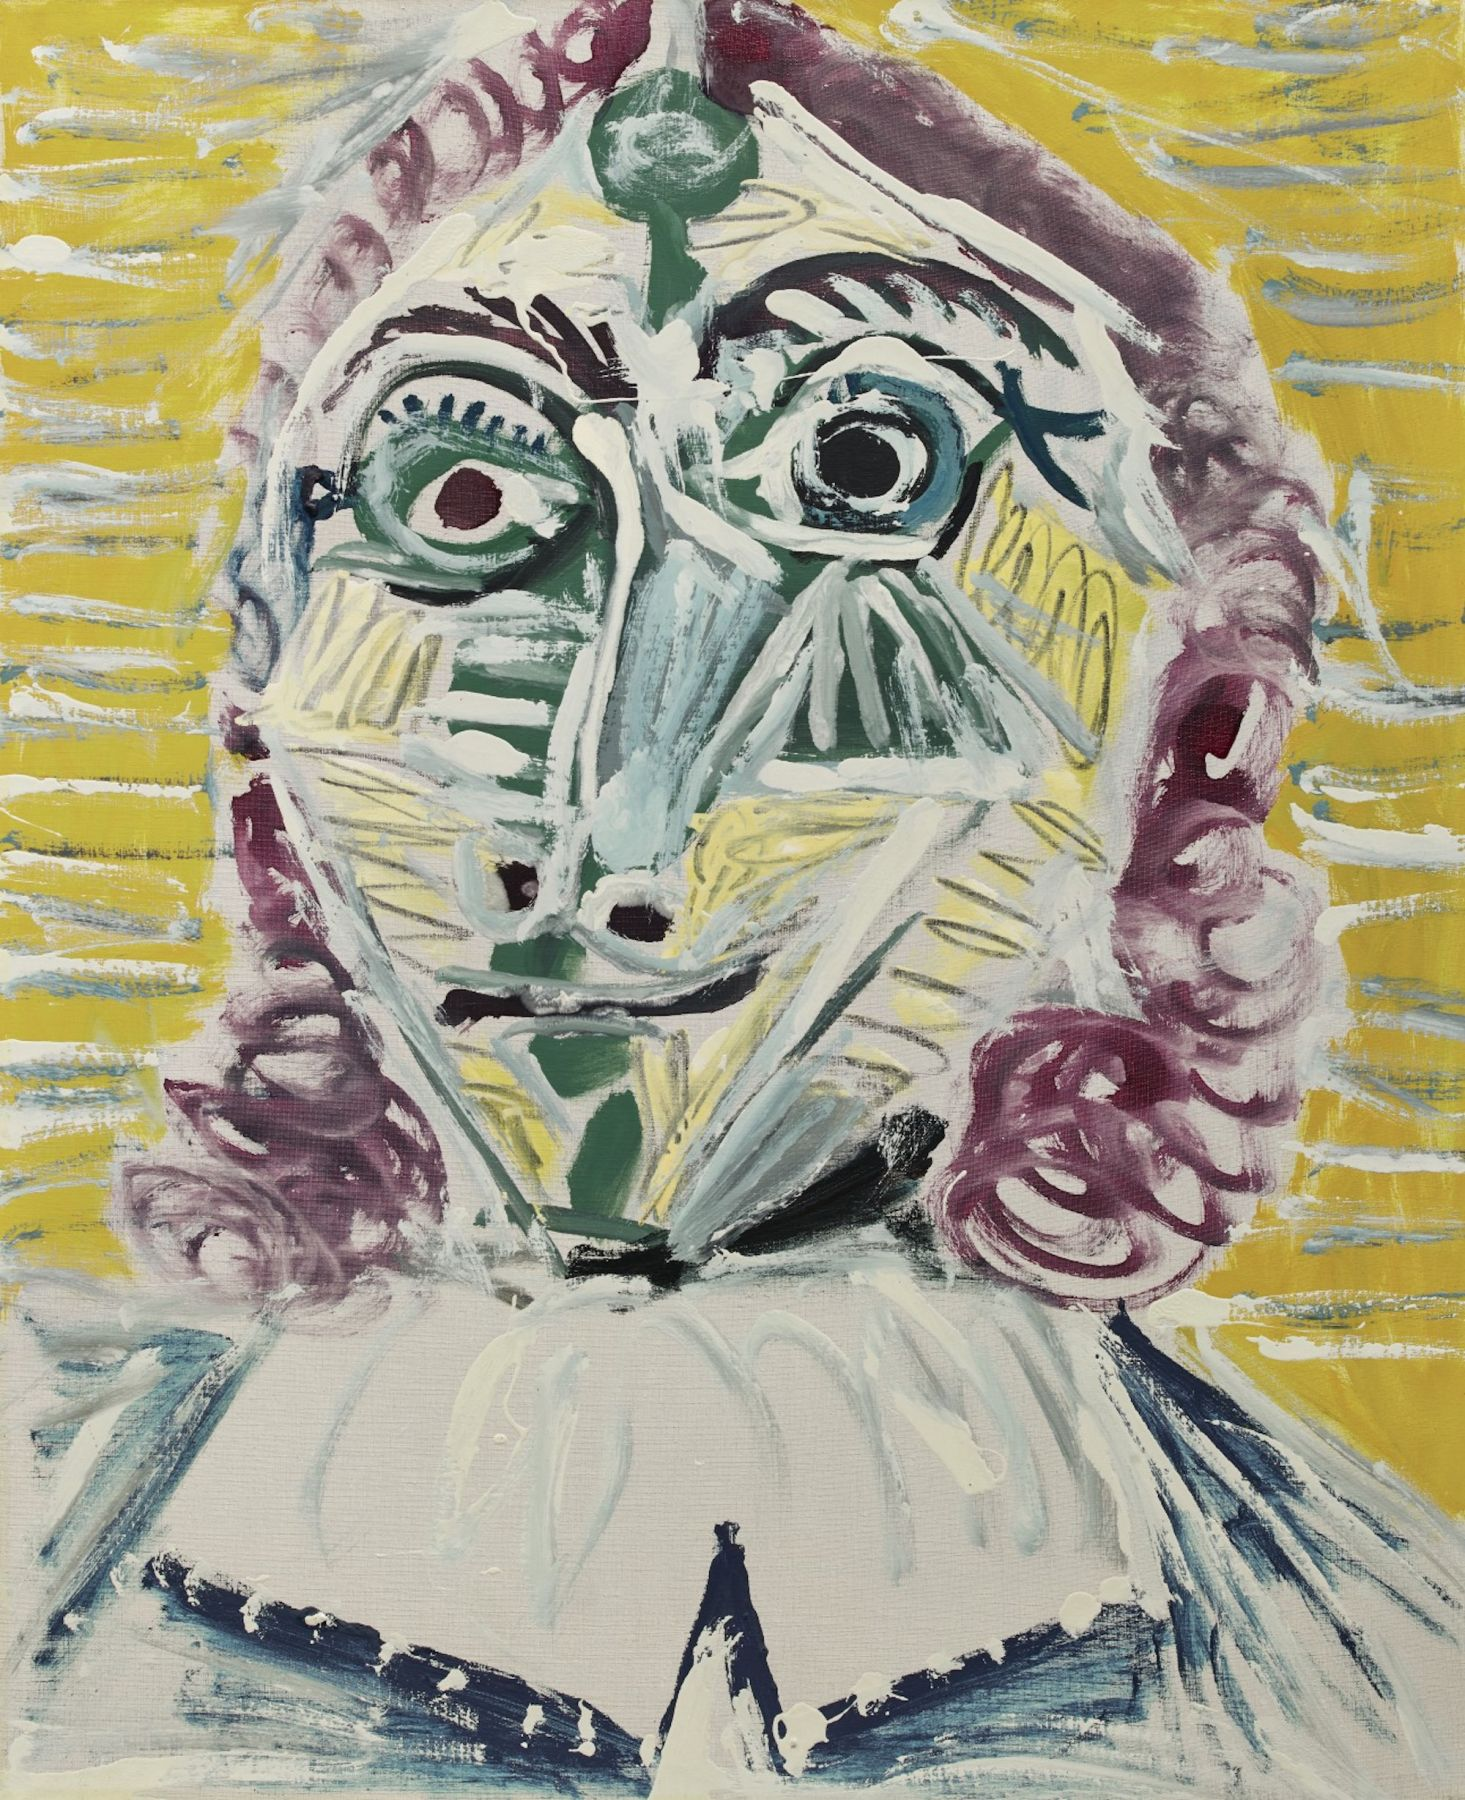 Pablo Picasso, Mousquetaire. Buste, 1967. This painting represents a portrait of a musketeer, which is one of the archetypal images of Picasso's late work. The richness and spontaneity of his brushwork – exemplified in the thick impasto and energetic working of Mousquetaire. Buste – are distinctly reminiscent of Van Gogh.